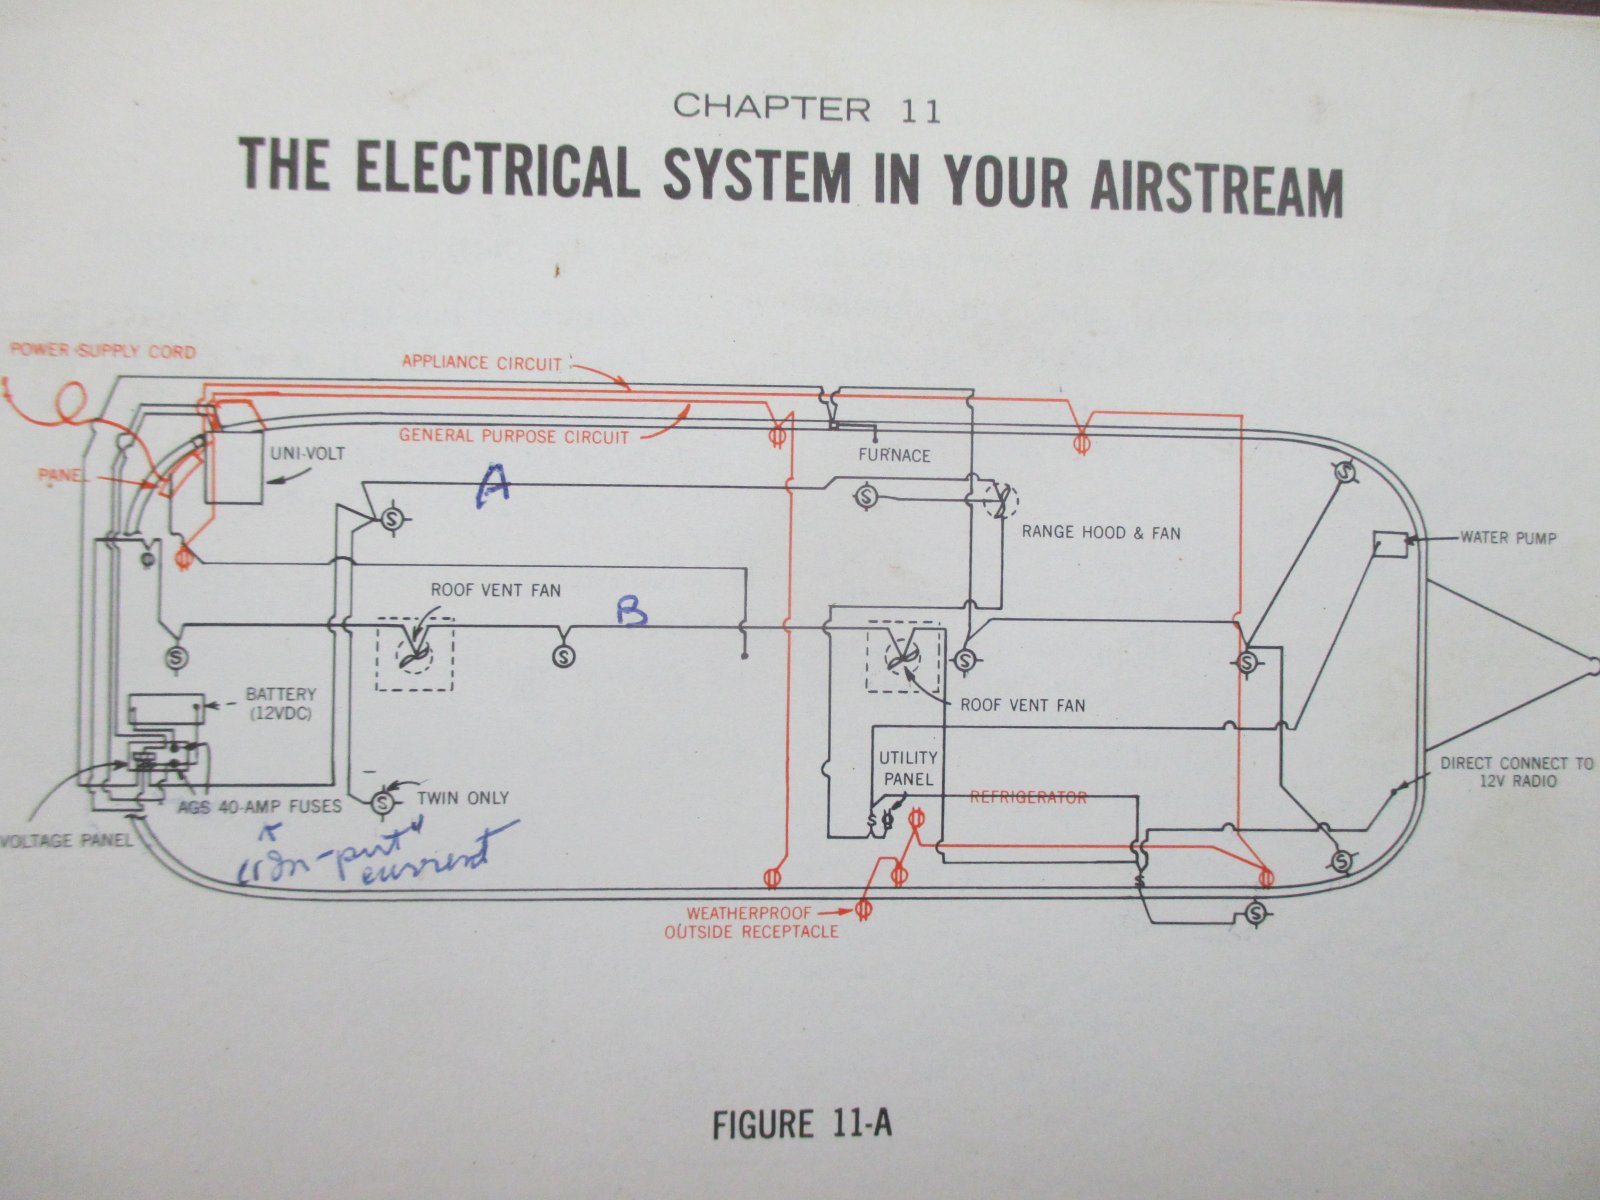 New Electrical From Scratch Airstream Forums 40 Amp Breaker Wiring Diagram Click Image For Larger Version Name 1404 Trailer Views 2841